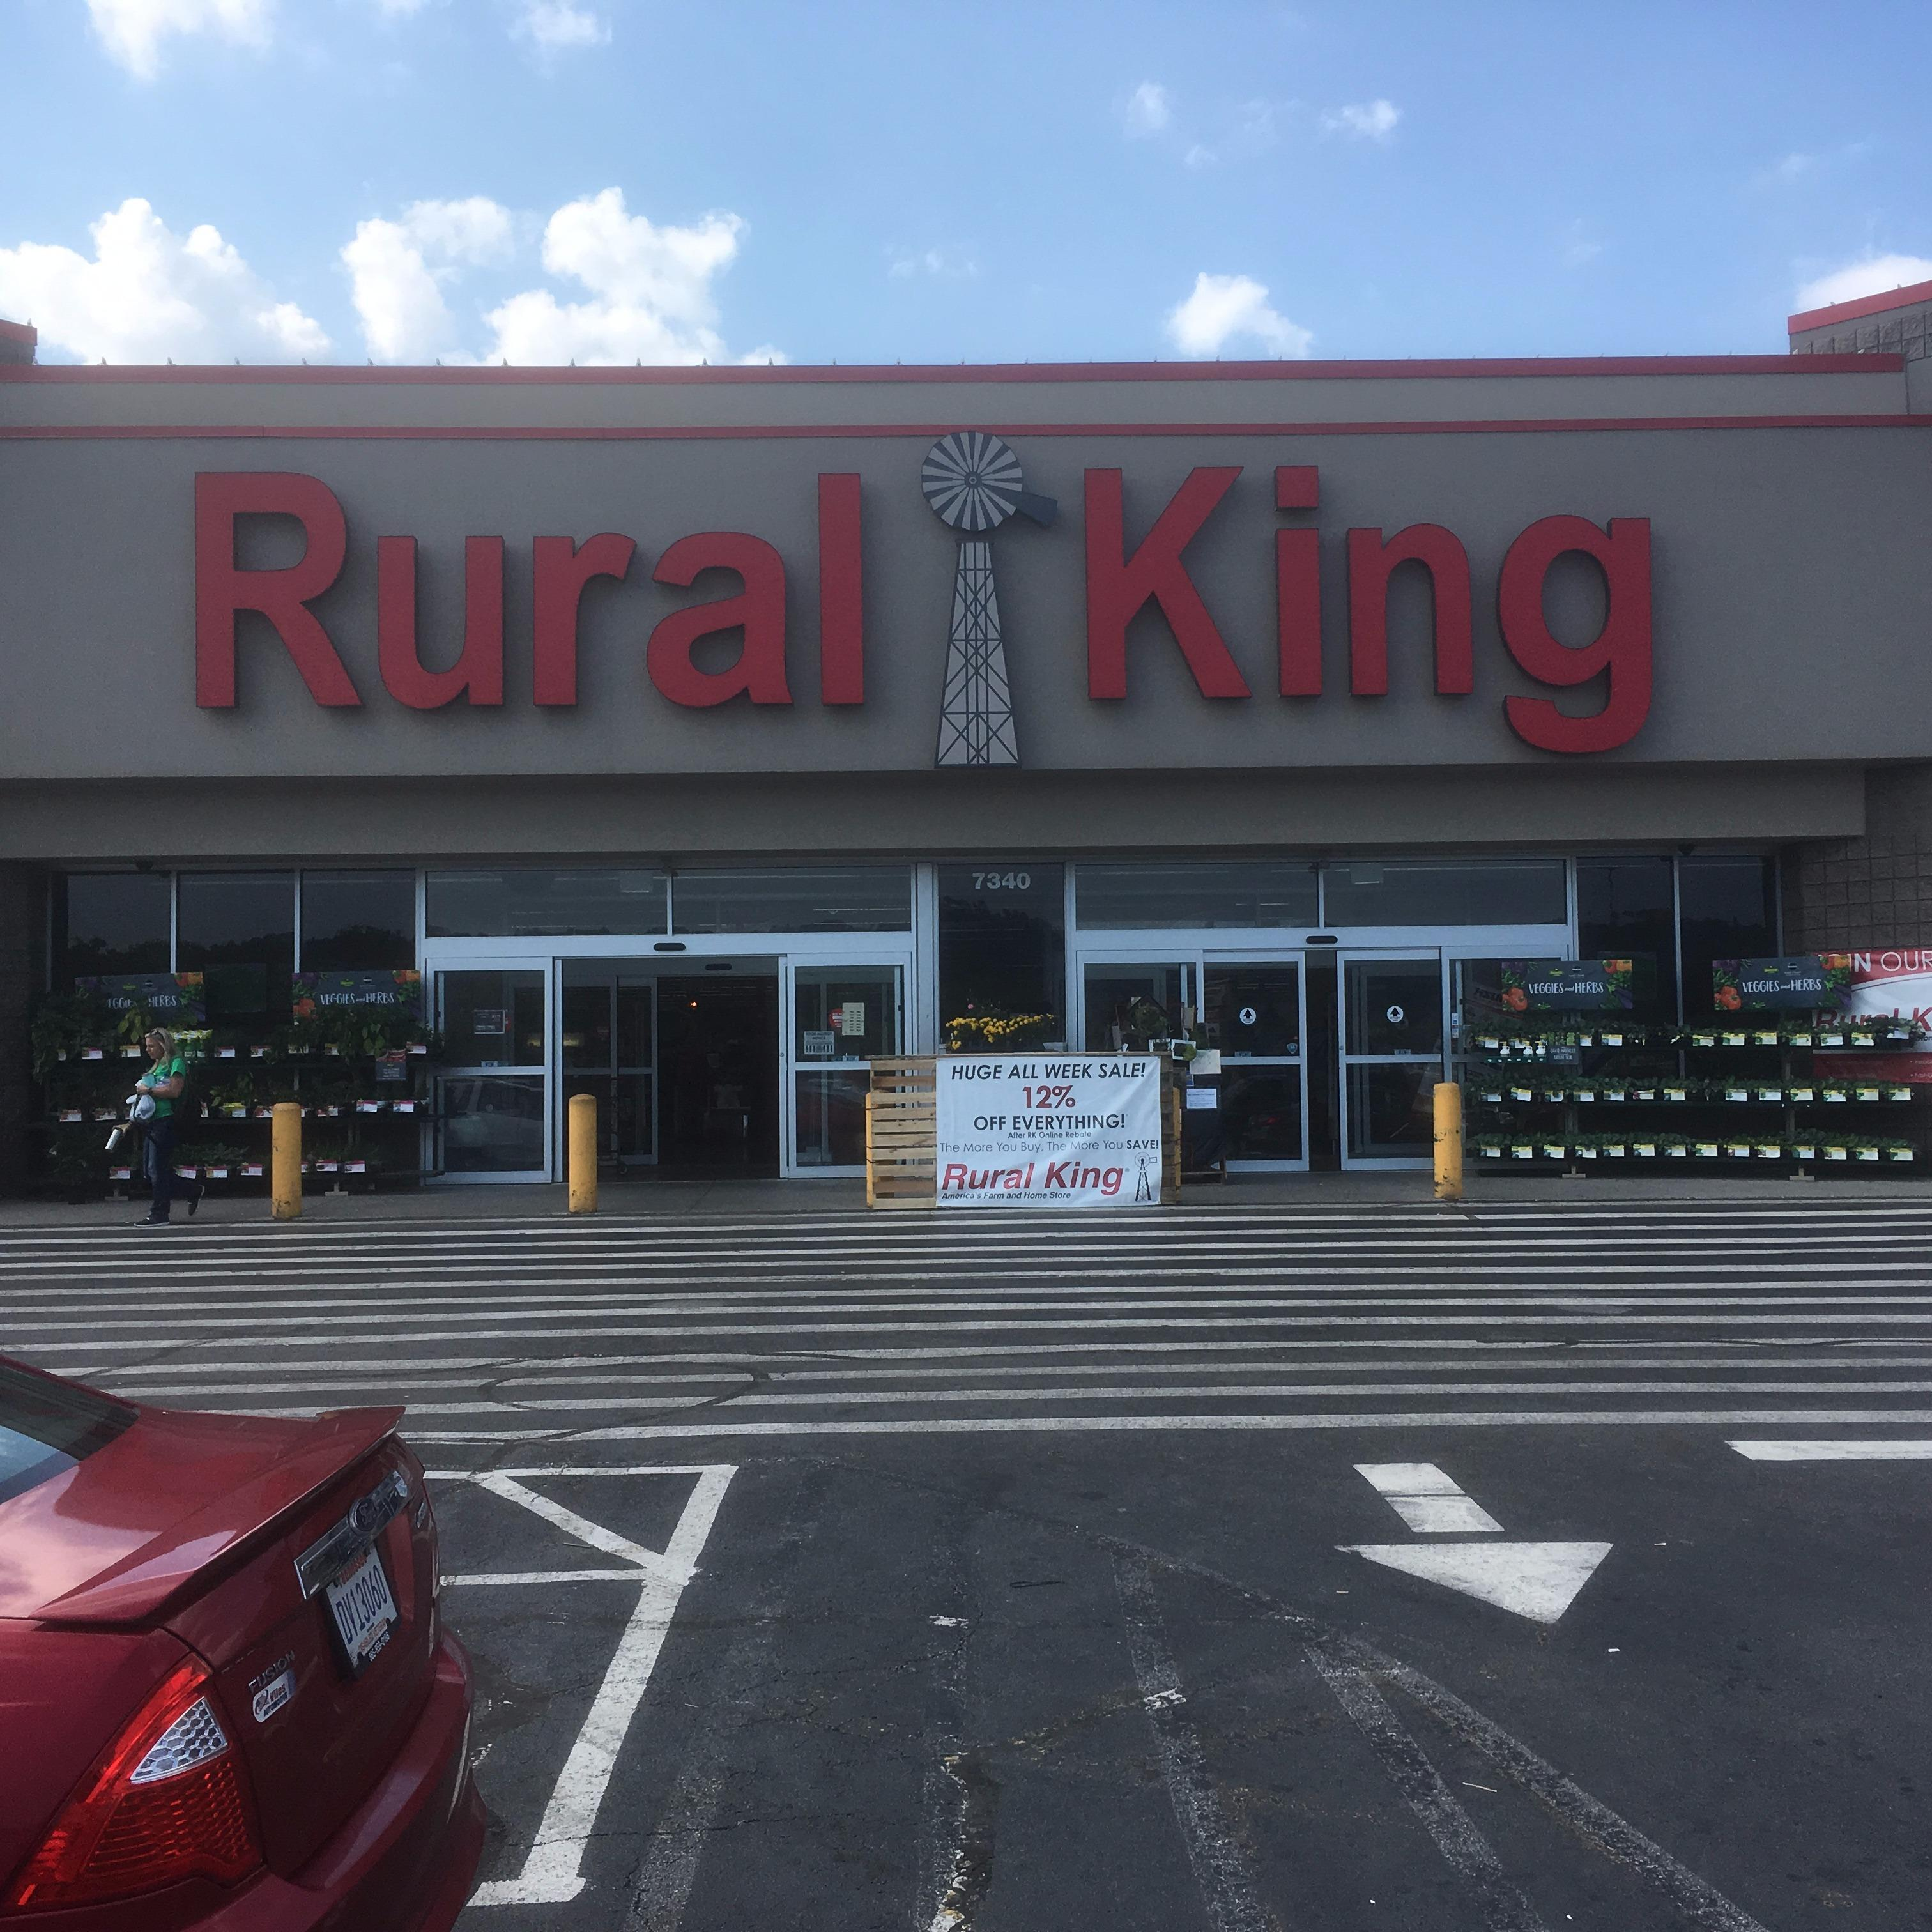 Rural King Knoxville Tennessee TN  LocalDatabasecom